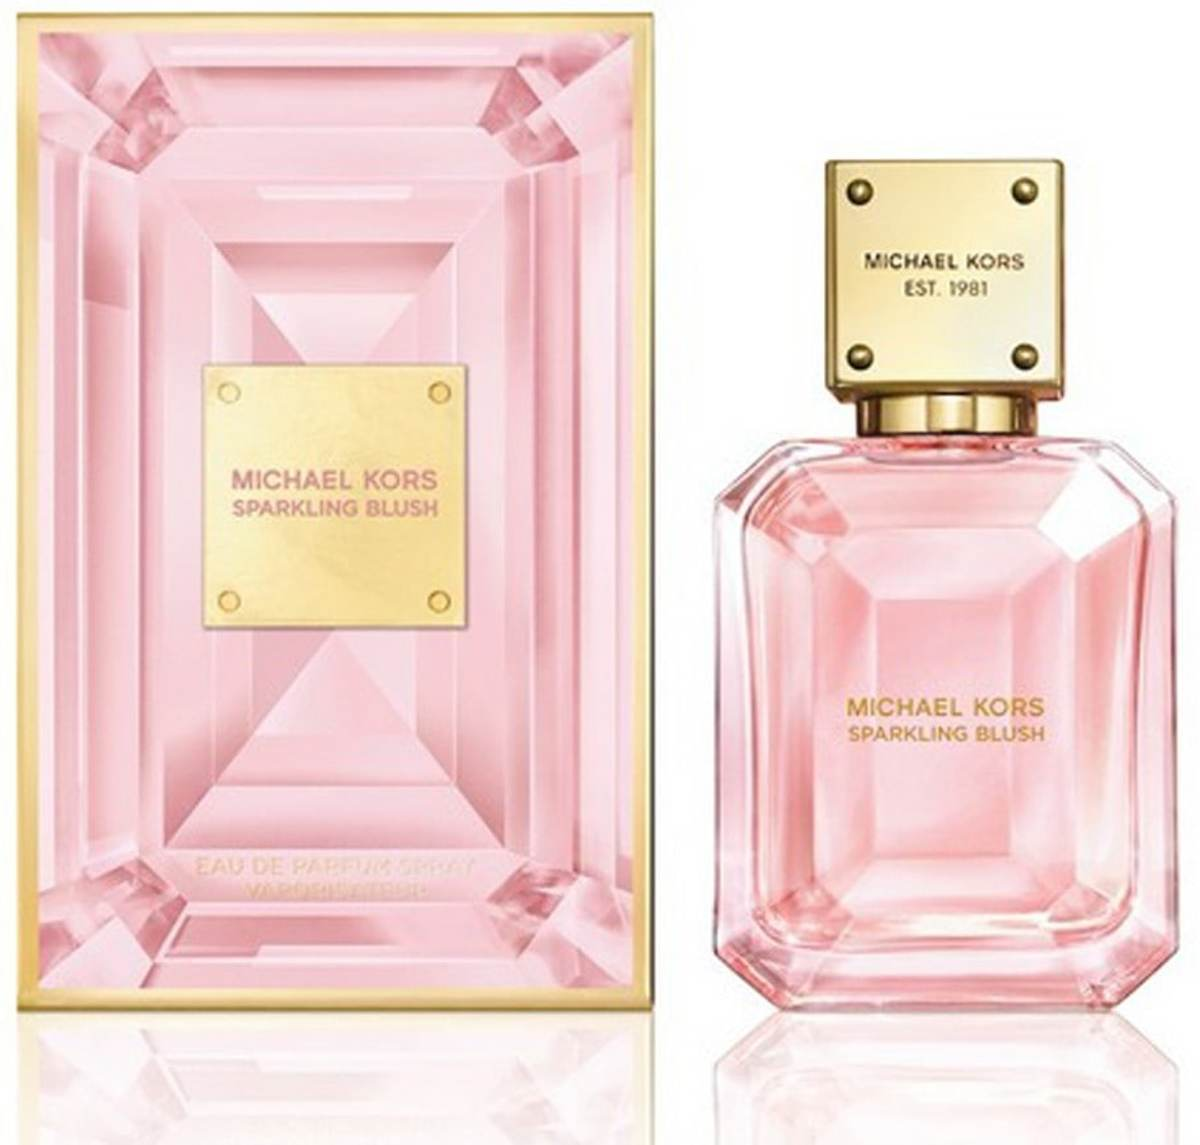 Michael Kors Sparkling Blush 50ml EDP Spray